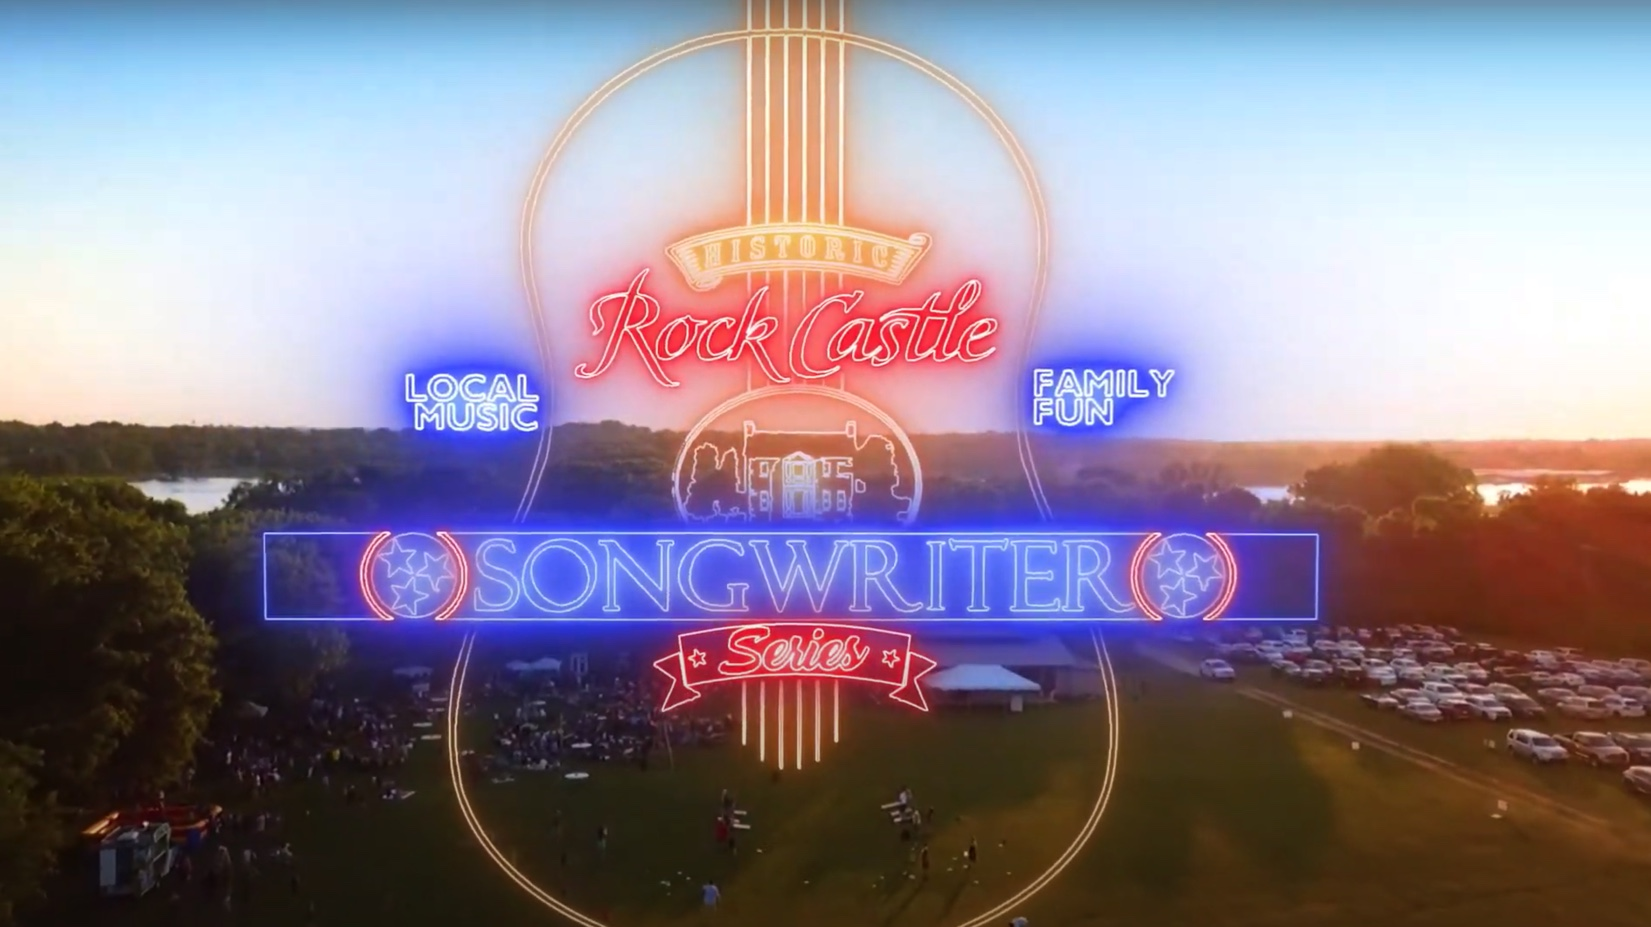 Summer Songwriter Series at Rock Castle